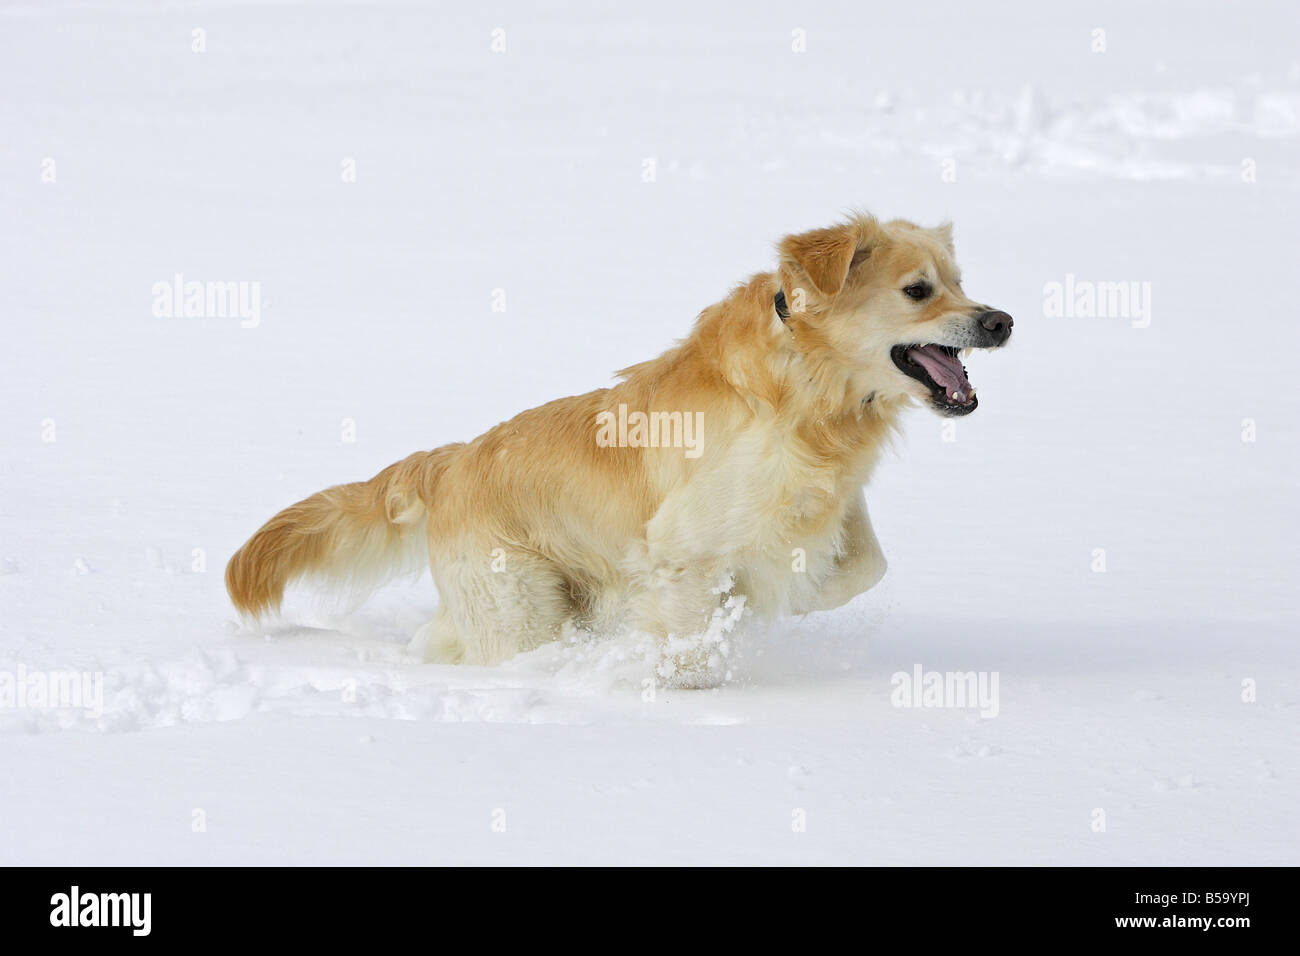 Golden Retriever (Canis lupus familiaris) playing in snow - Stock Image